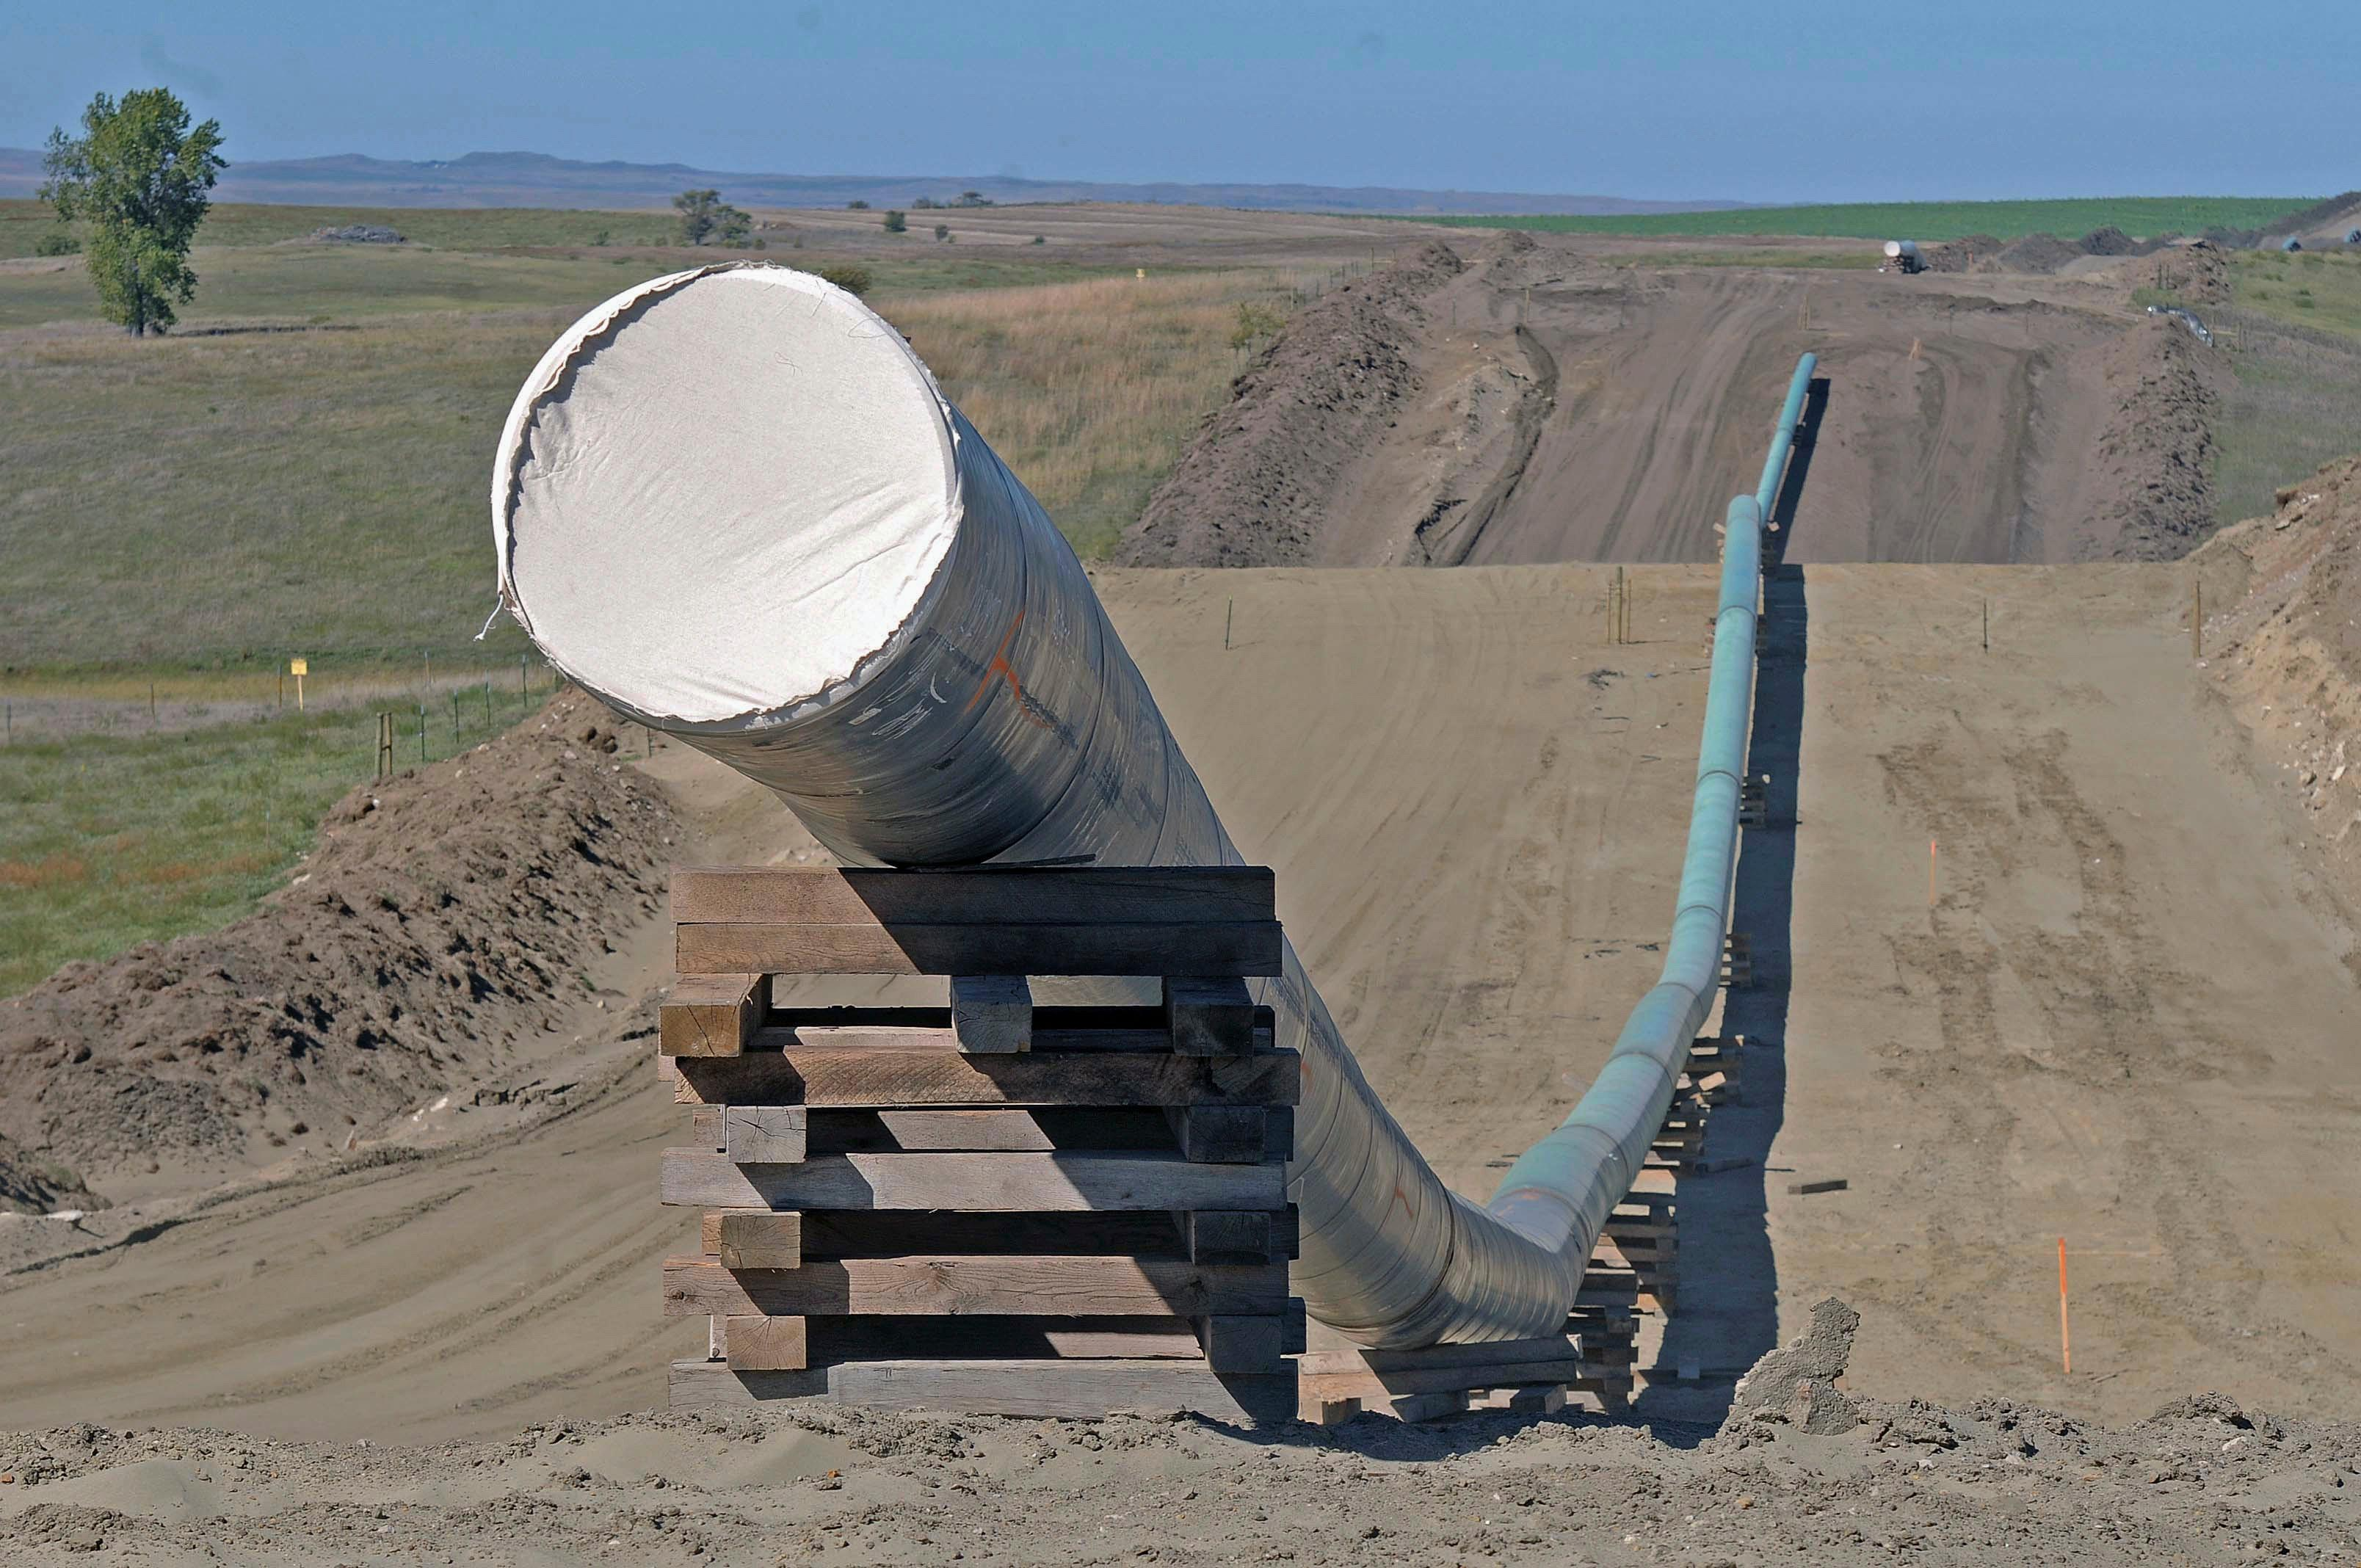 FILE - This Sept. 29, 2016, file photo, shows a section of the Dakota Access pipeline under construction near St. Anthony in Morton County, N.D. (Tom Stromme/The Bismarck Tribune via AP, File)